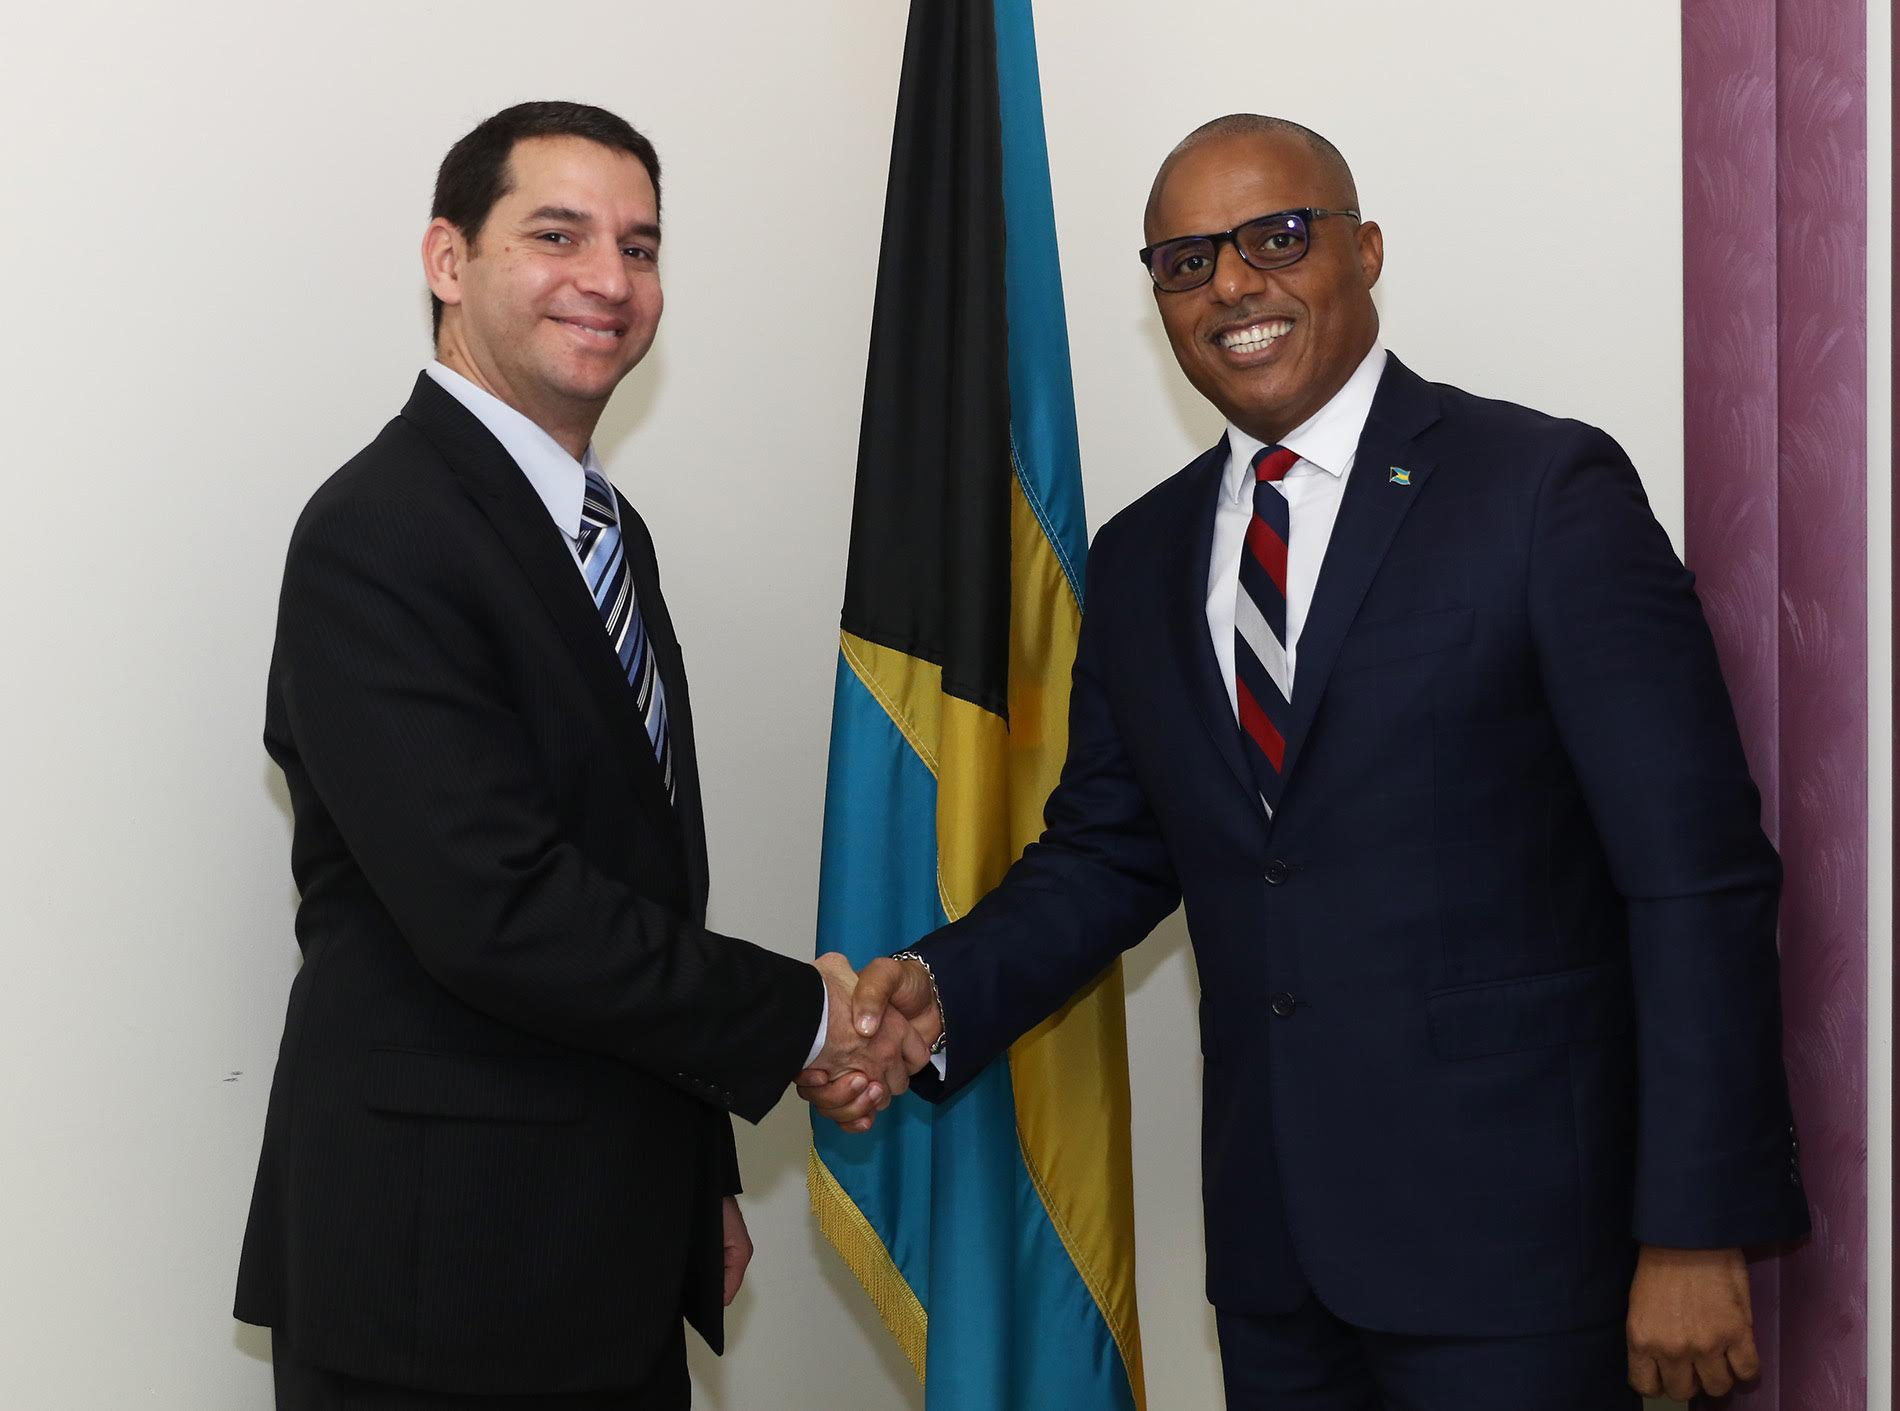 Israel seeking bi-lateral relationship with The Bahamas